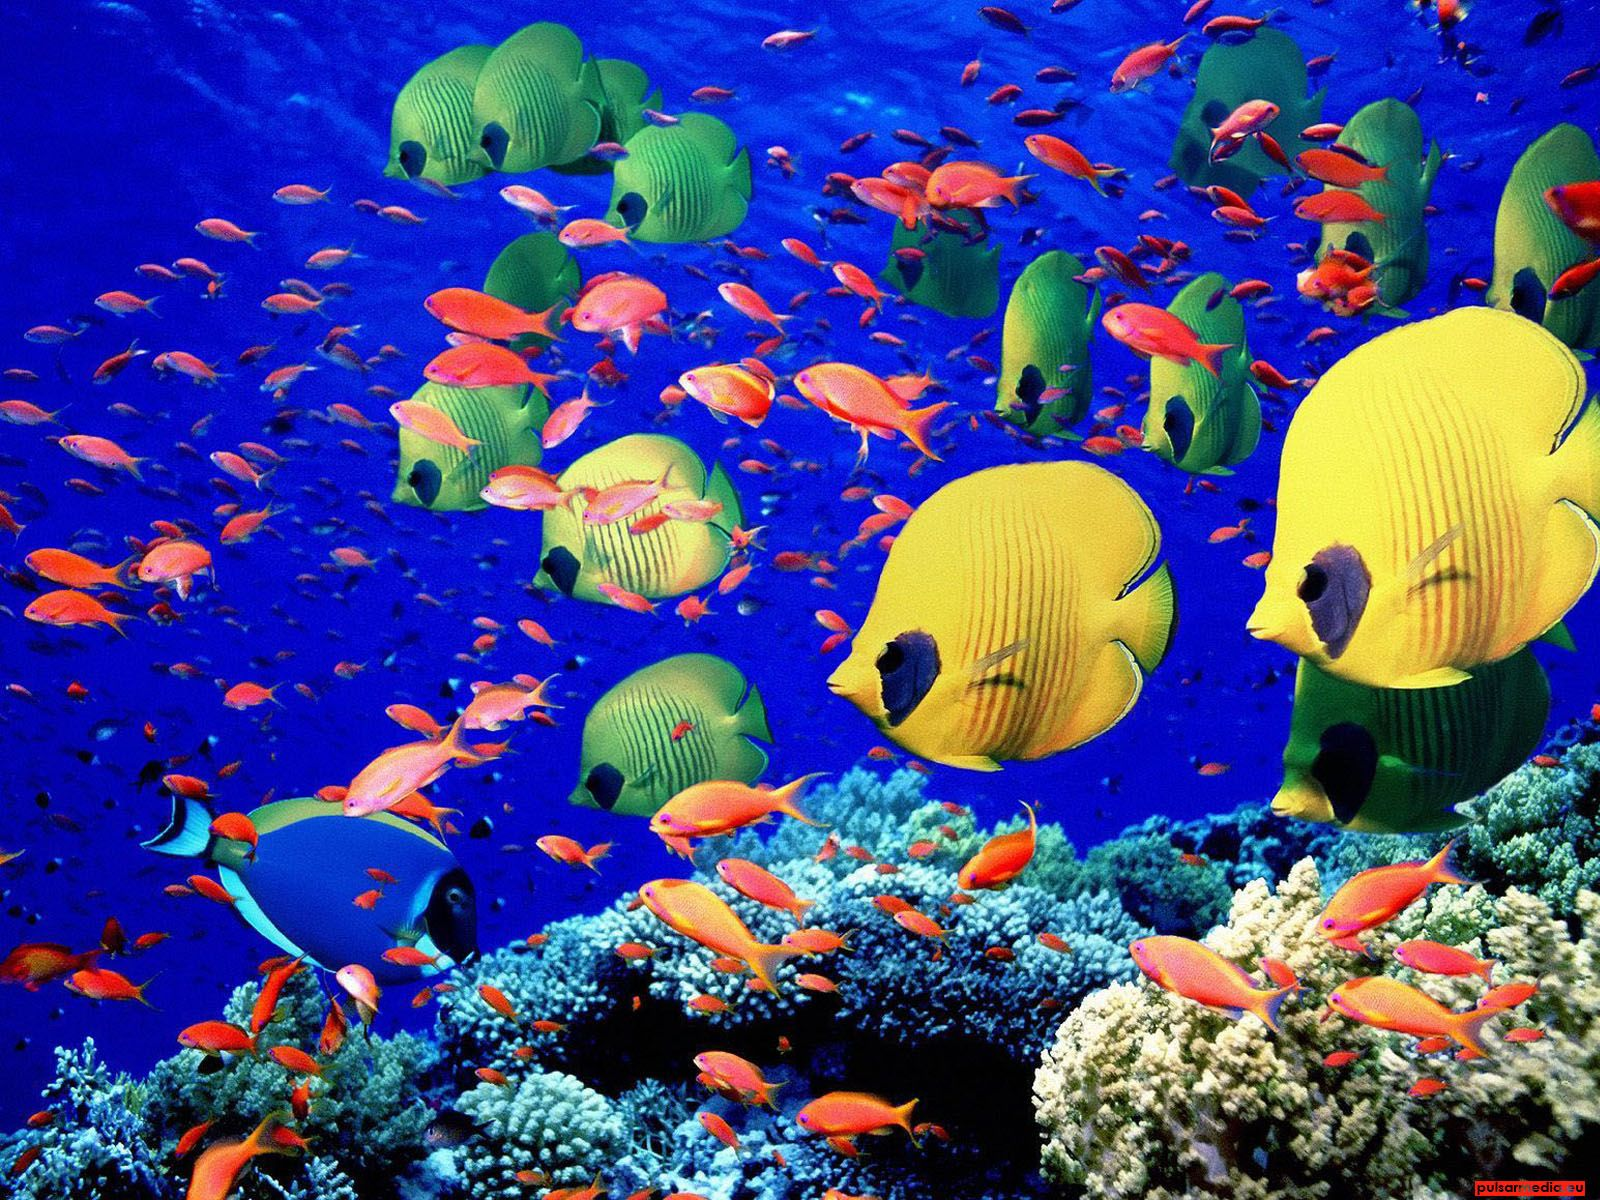 Moving Ocean Desktop Backgrounds Animated Wallpaper 3d Aquarium Ocean Life Wallpapers 076 Ocean Animals Sea Life Wallpaper Tropical Fish